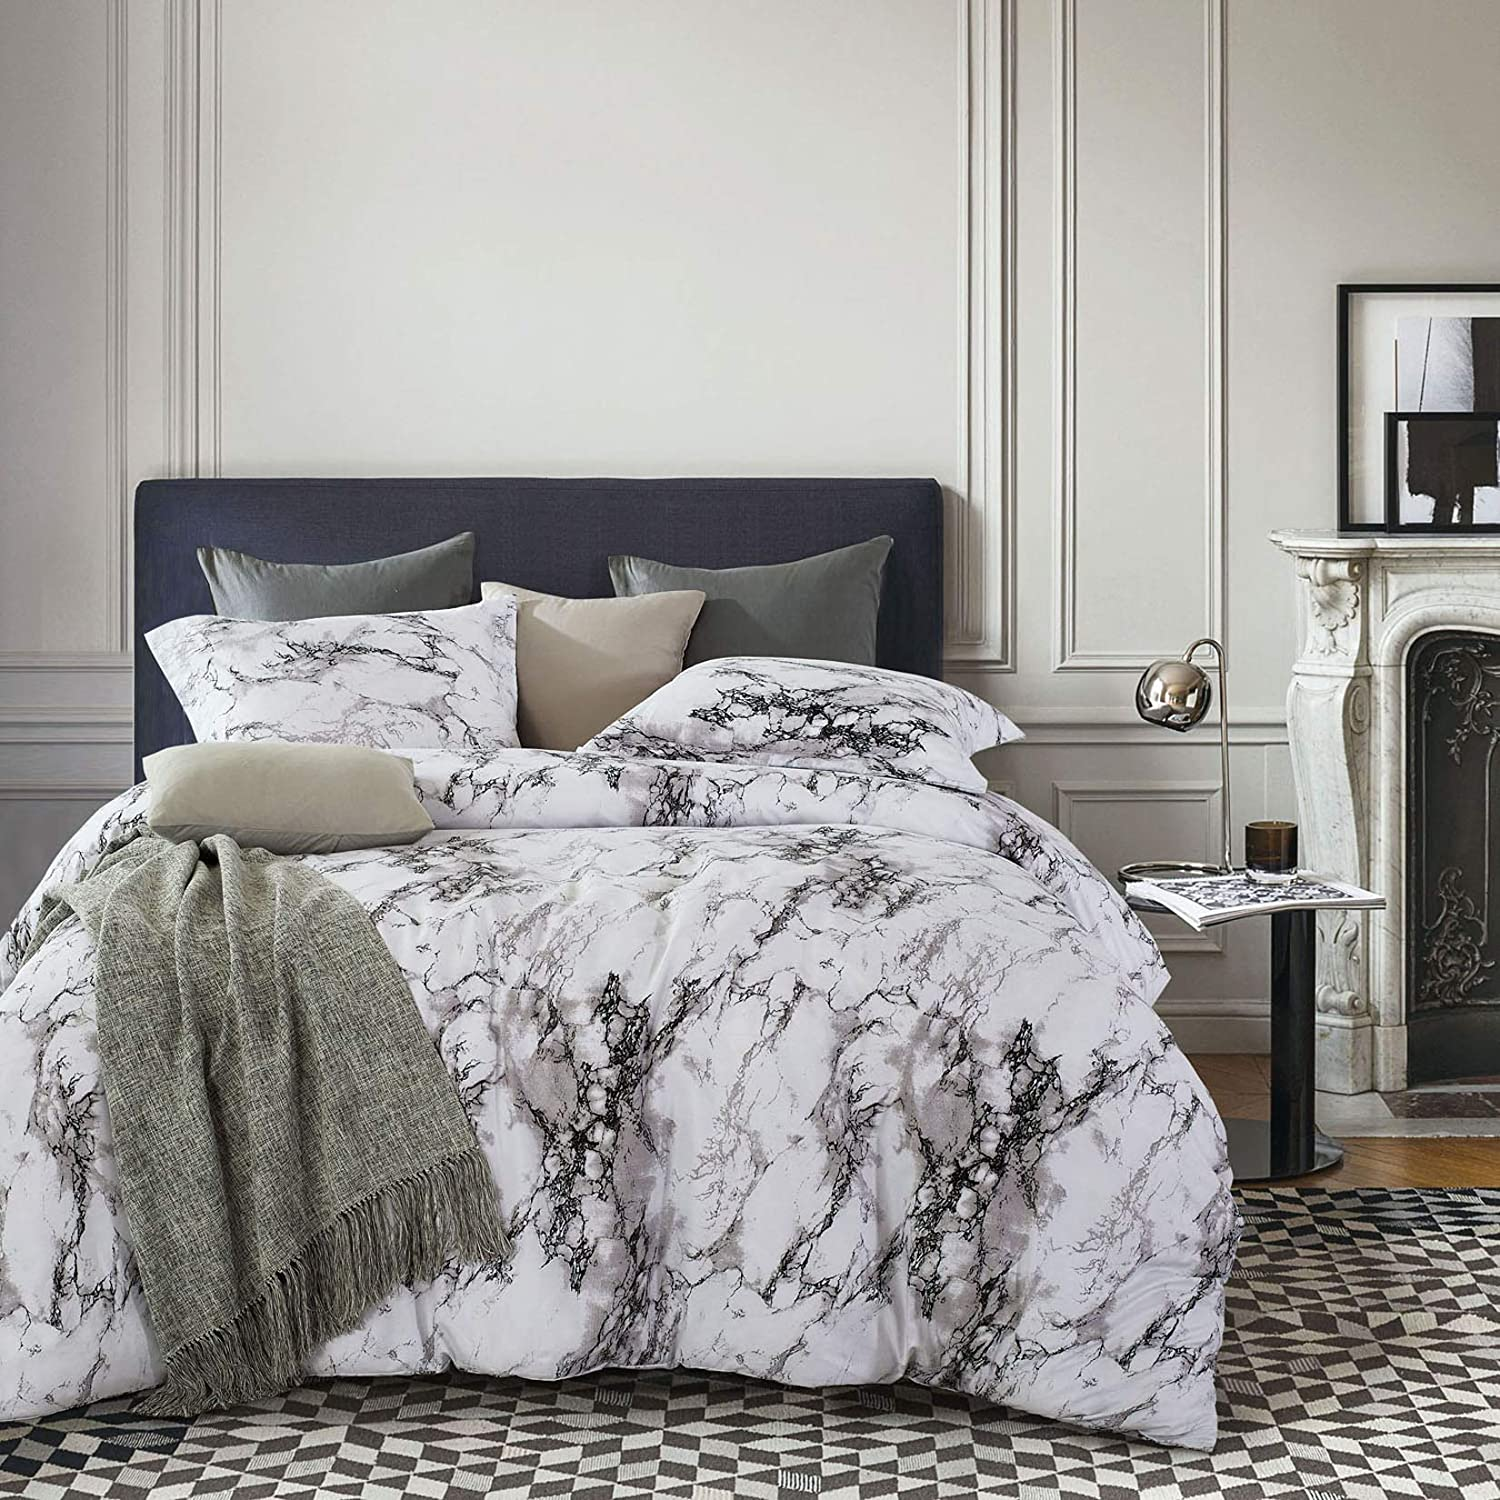 Wake In Cloud - Marble Comforter Set, Gray Grey Black and White Pattern Printed, Soft Microfiber Bedding